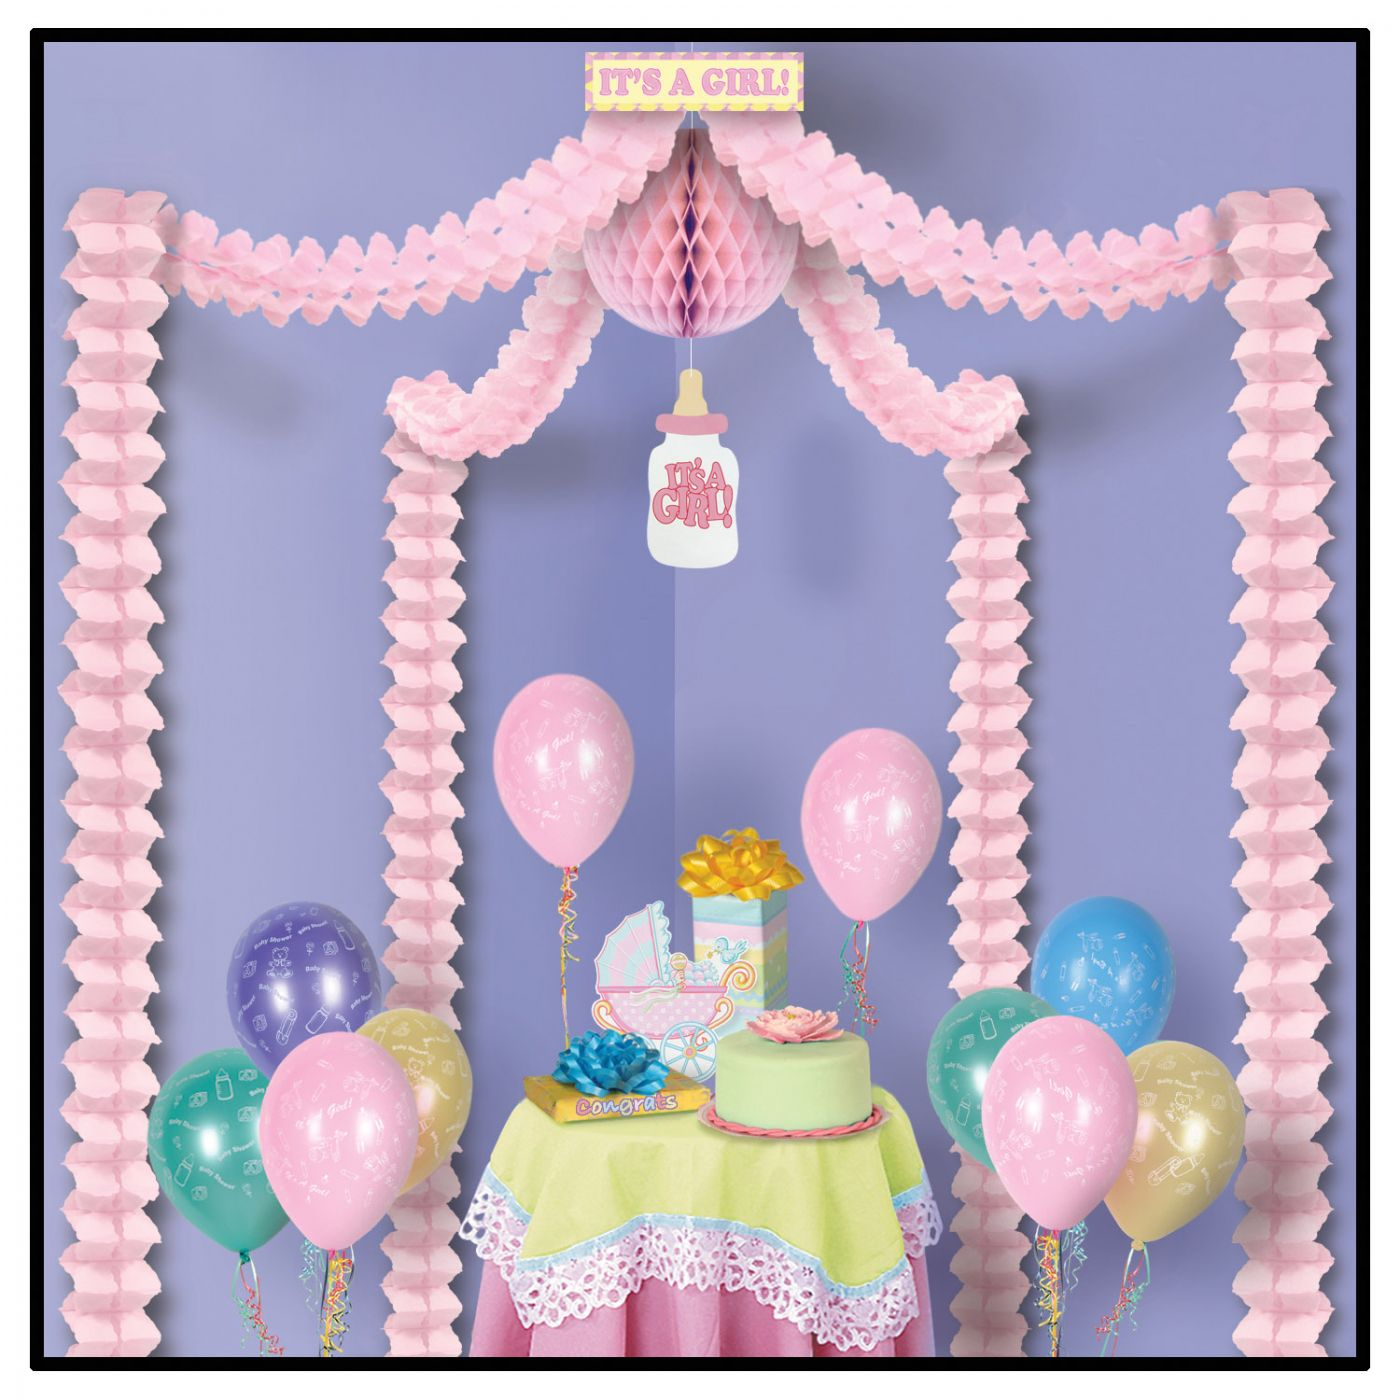 It's A Girl! Party Canopy (6) image